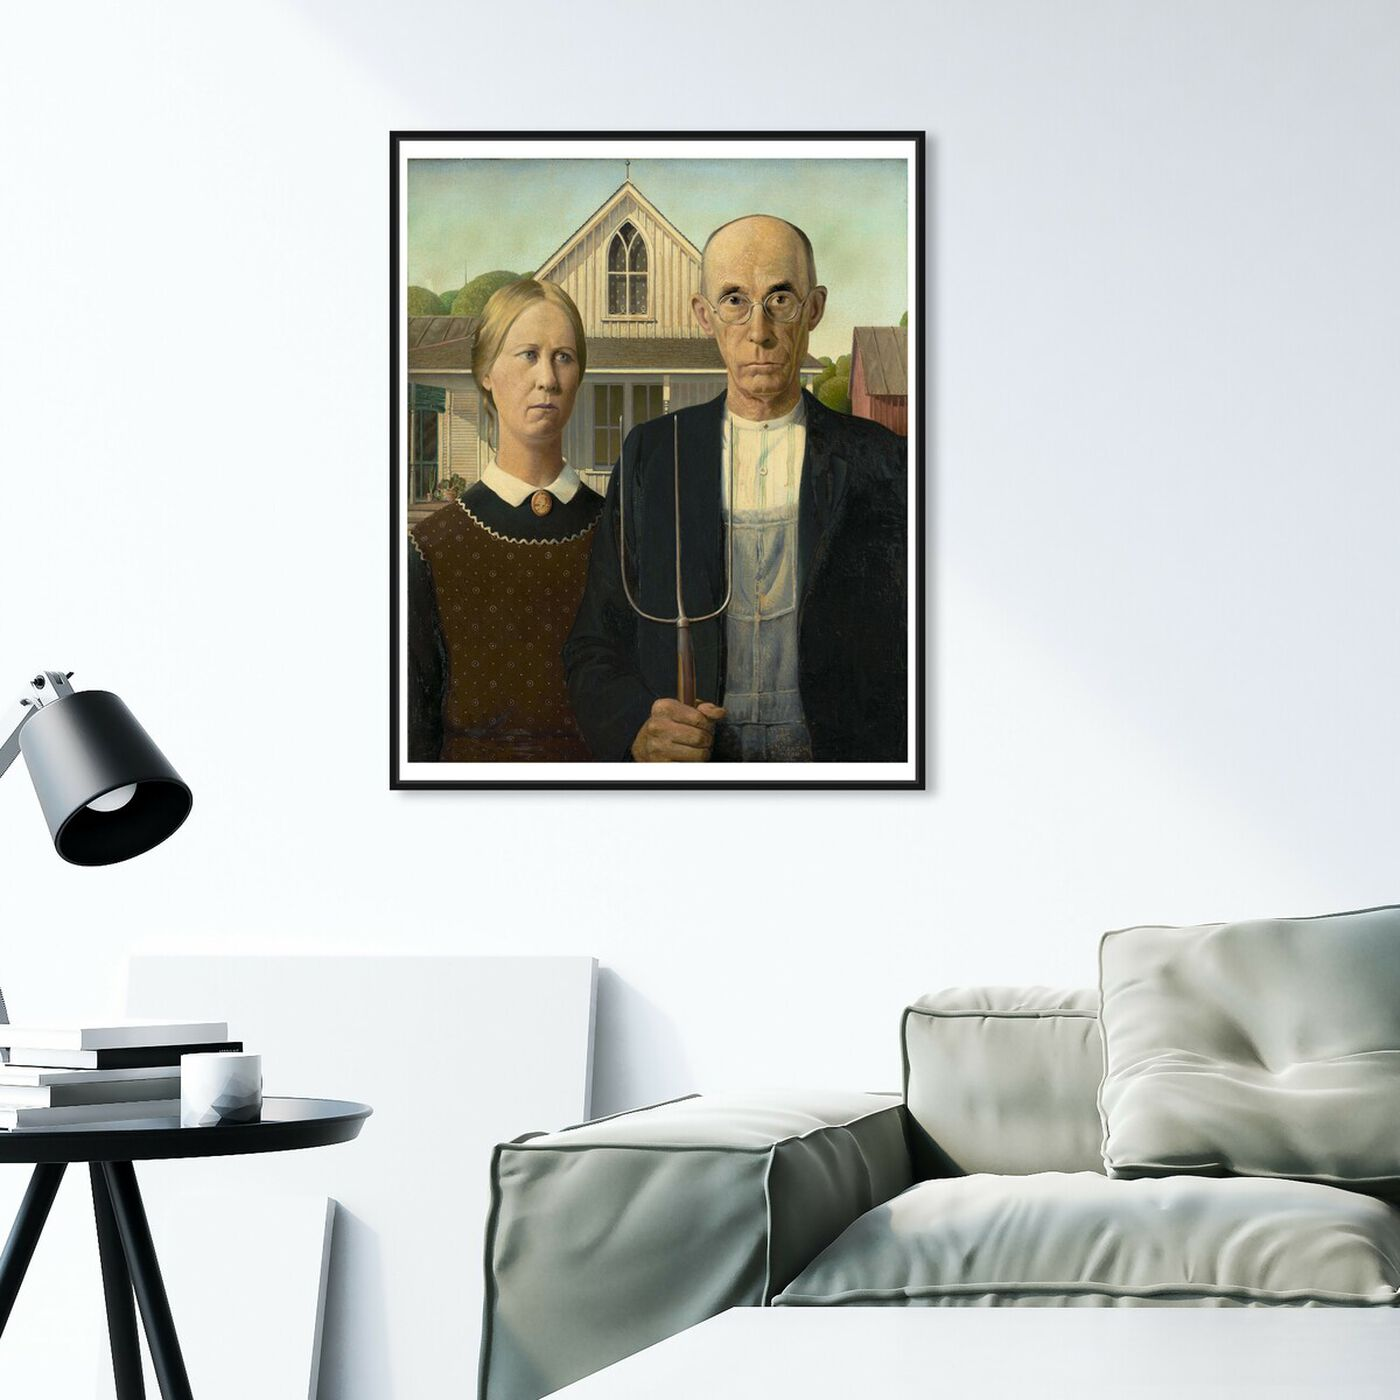 Hanging view of Wood - American Gothic featuring classic and figurative and renaissance art.